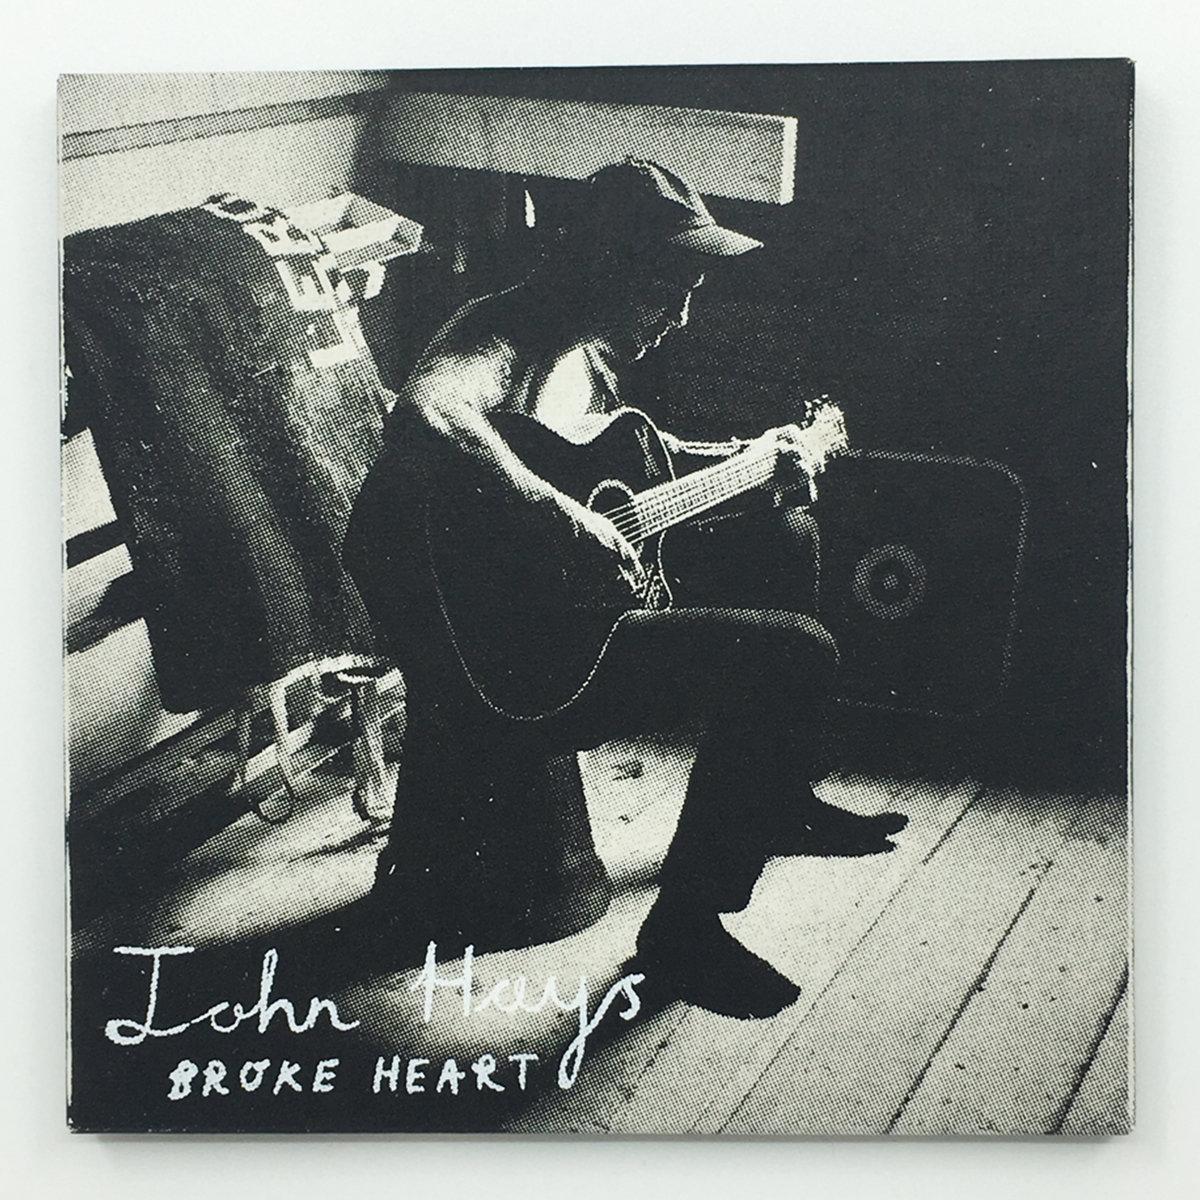 Cool Album Cover Art Broken Hearts